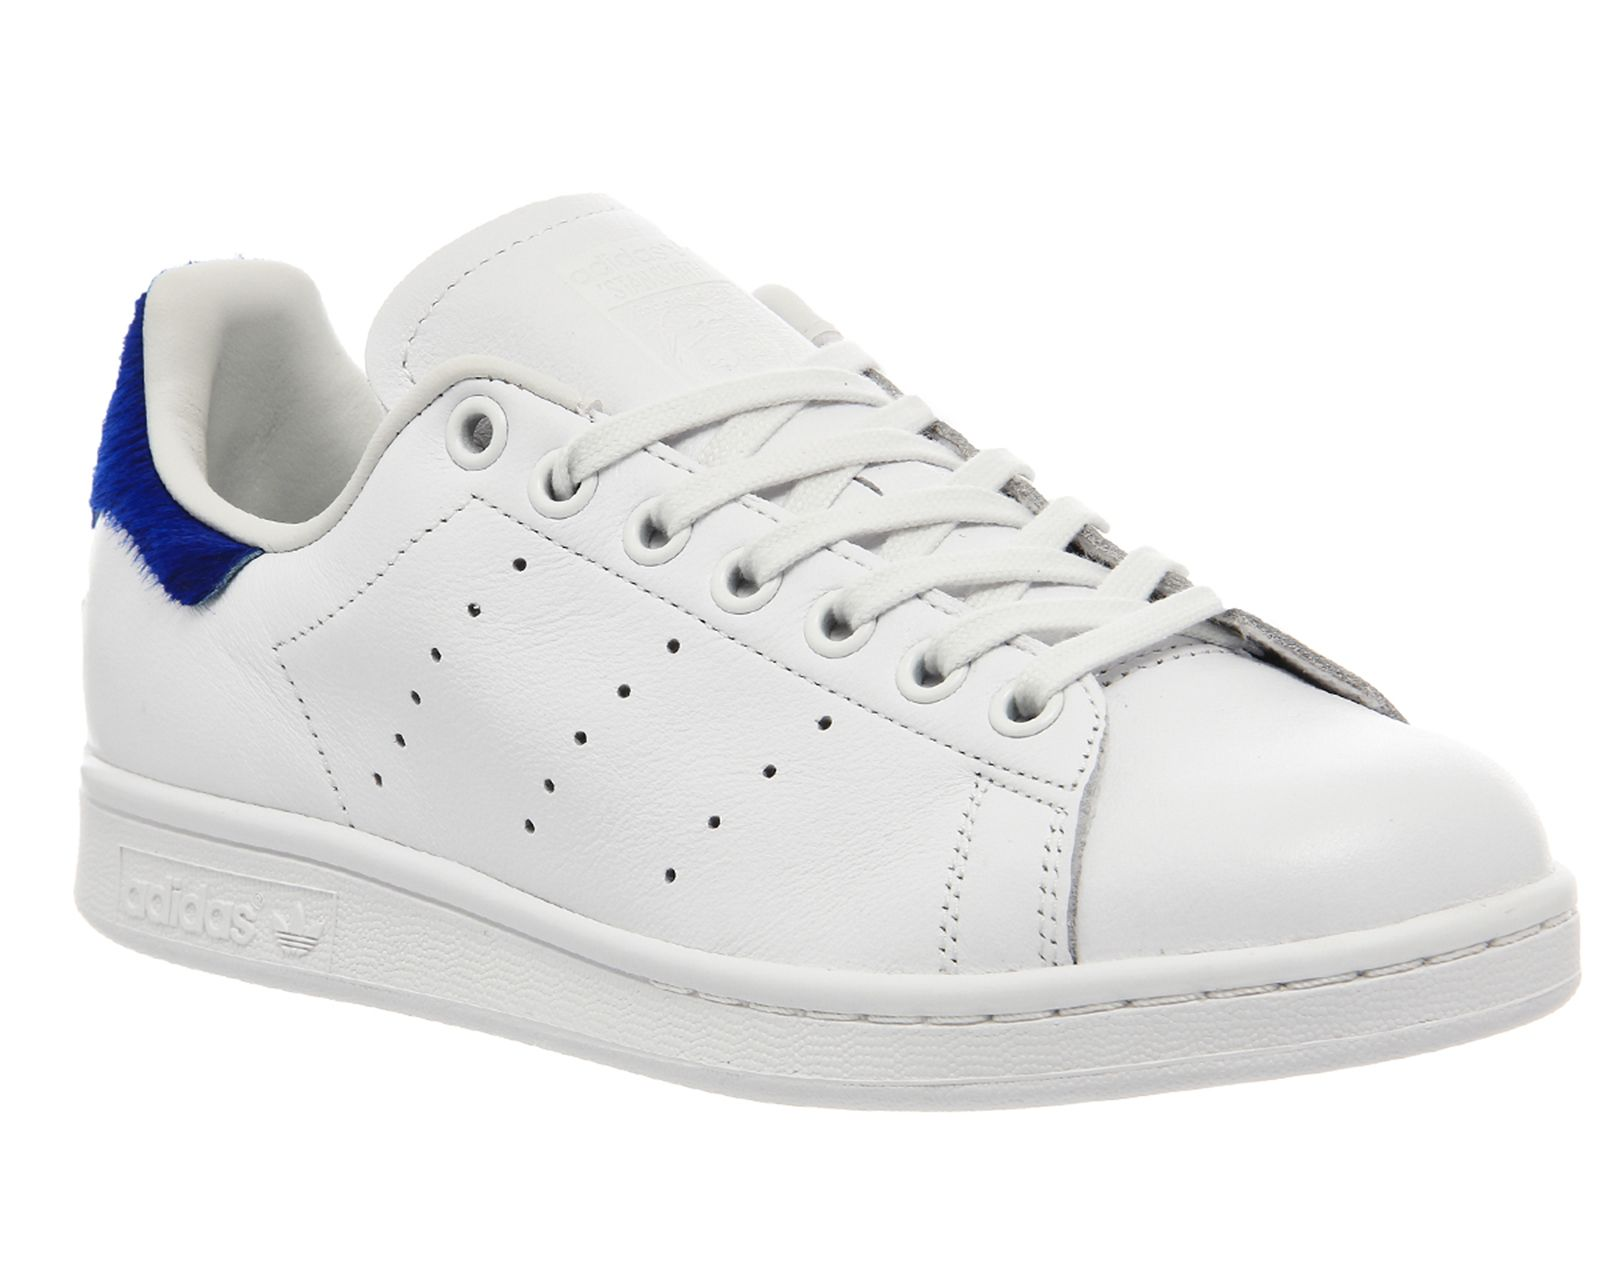 aef9c9ee93b Buy Vintage White Blue Pony Adidas Stan Smith Trainers from OFFICE.co.uk.